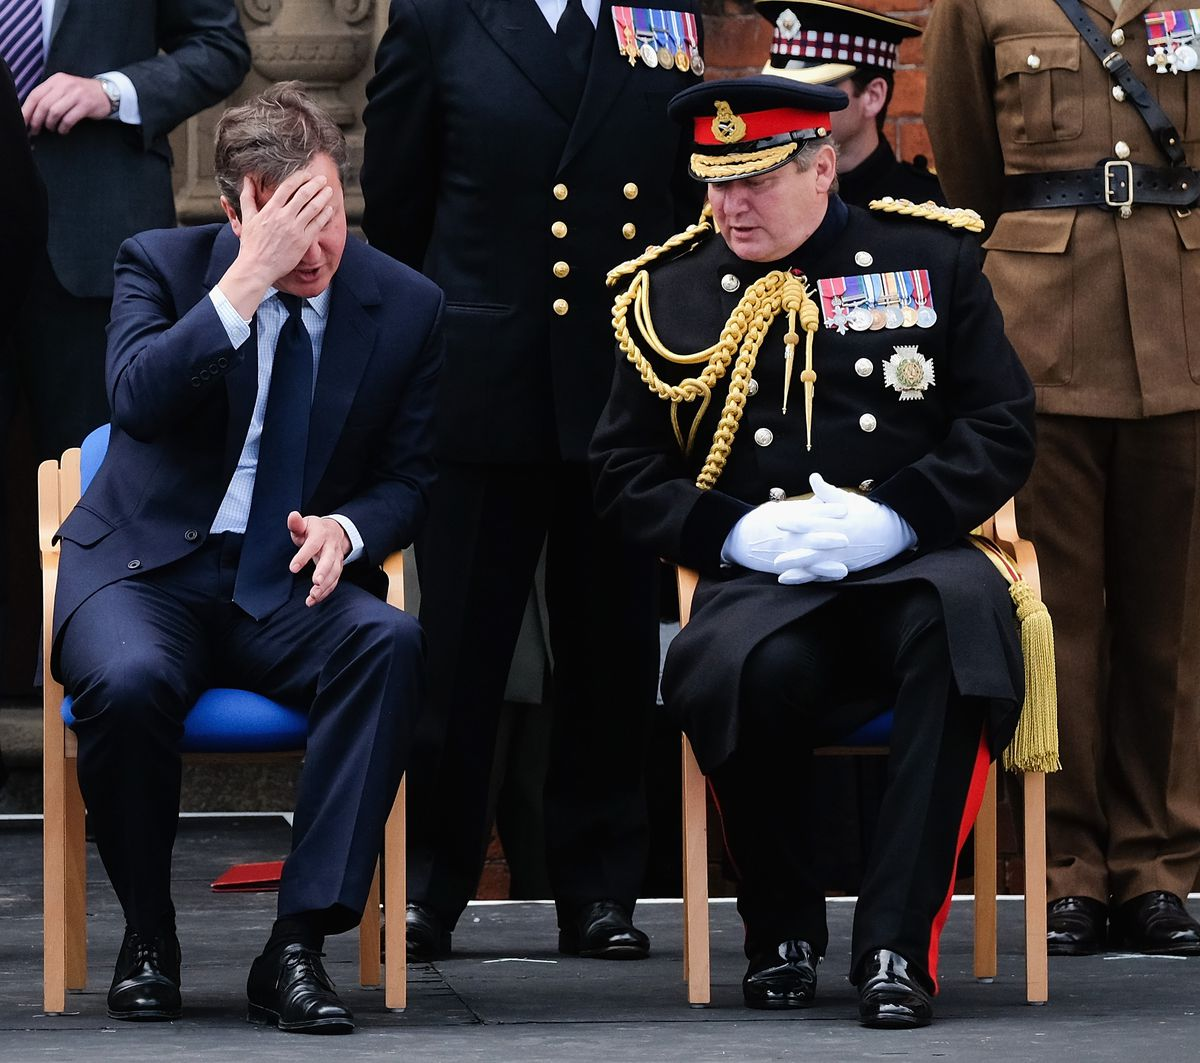 David Cameron Attends Armed Forces Day